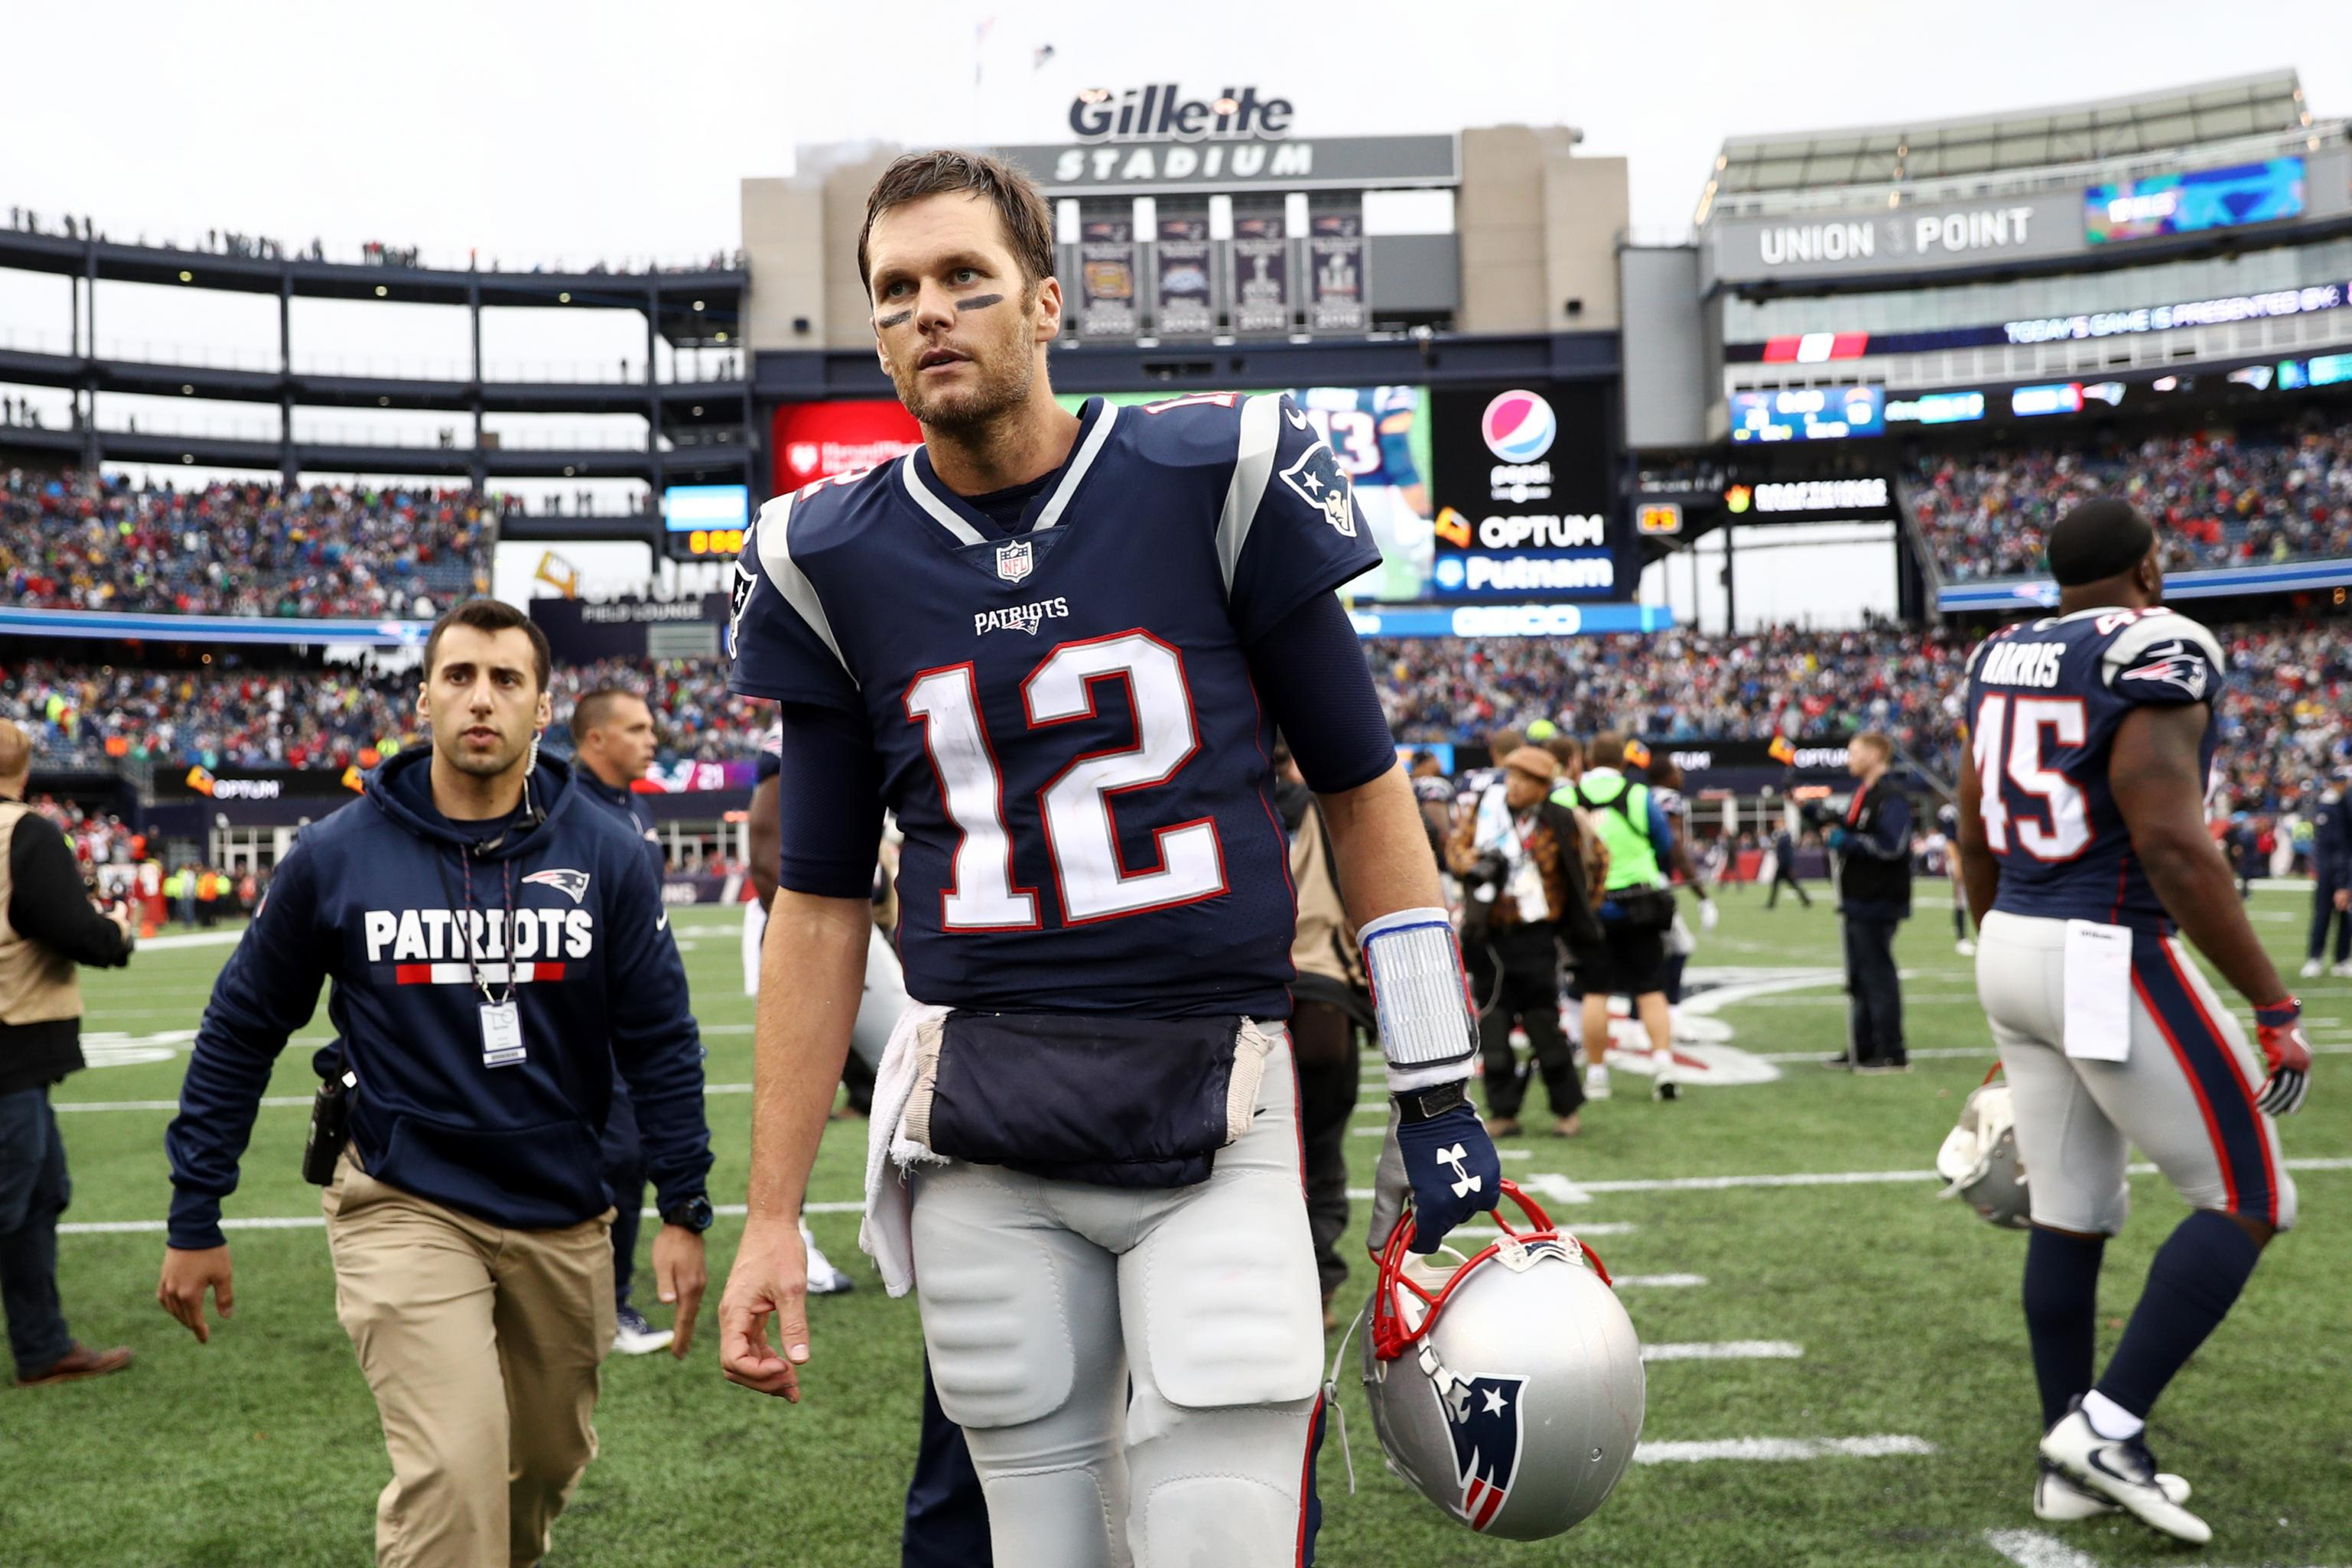 Betting lines broncos patriots highlights sporting life live betting horse racing